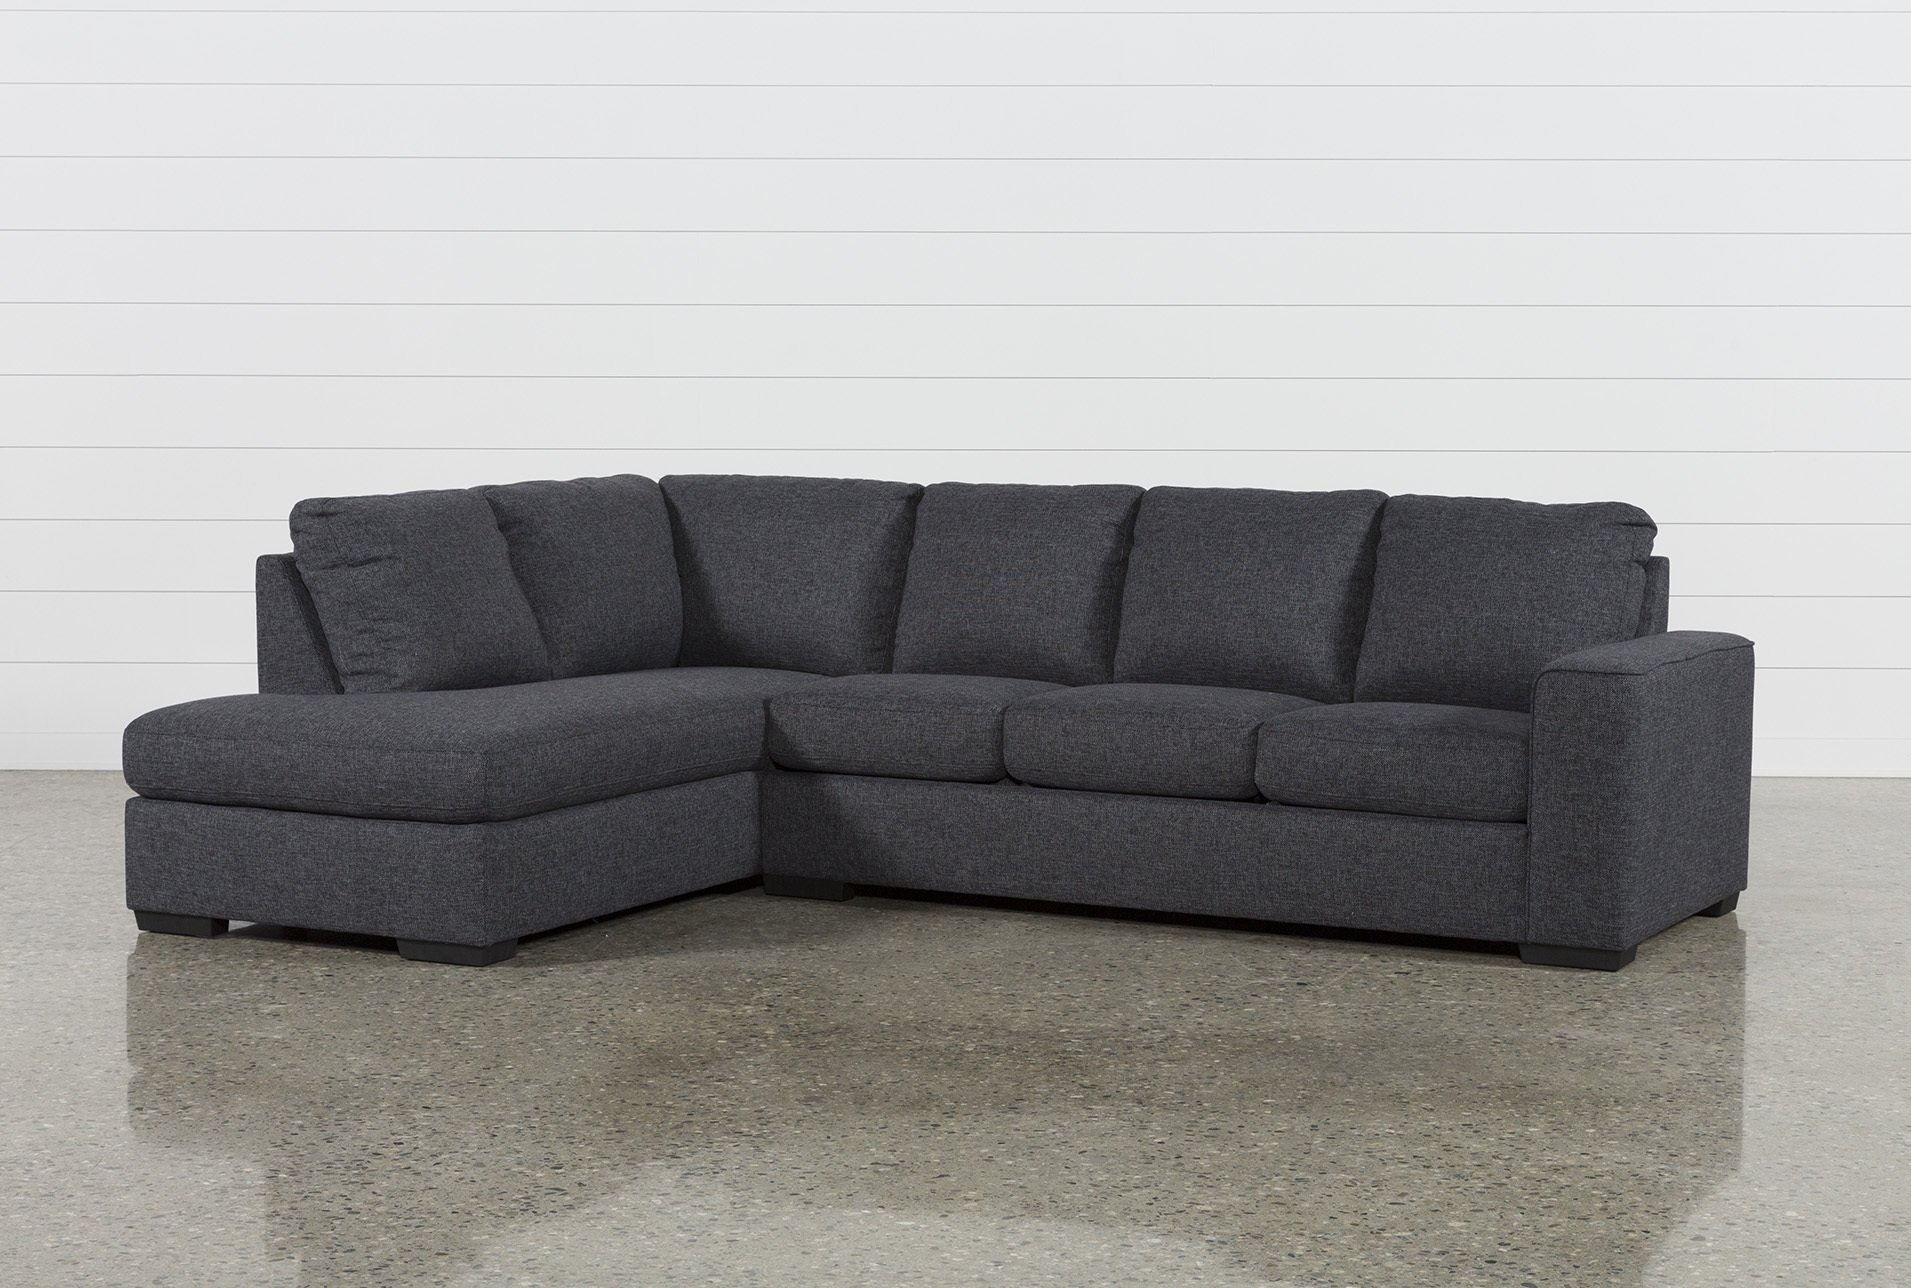 Lucy Dark Grey 2 Piece Sectional W/laf Chaise | Dark Grey And Products Regarding Aspen 2 Piece Sectionals With Raf Chaise (Image 19 of 25)